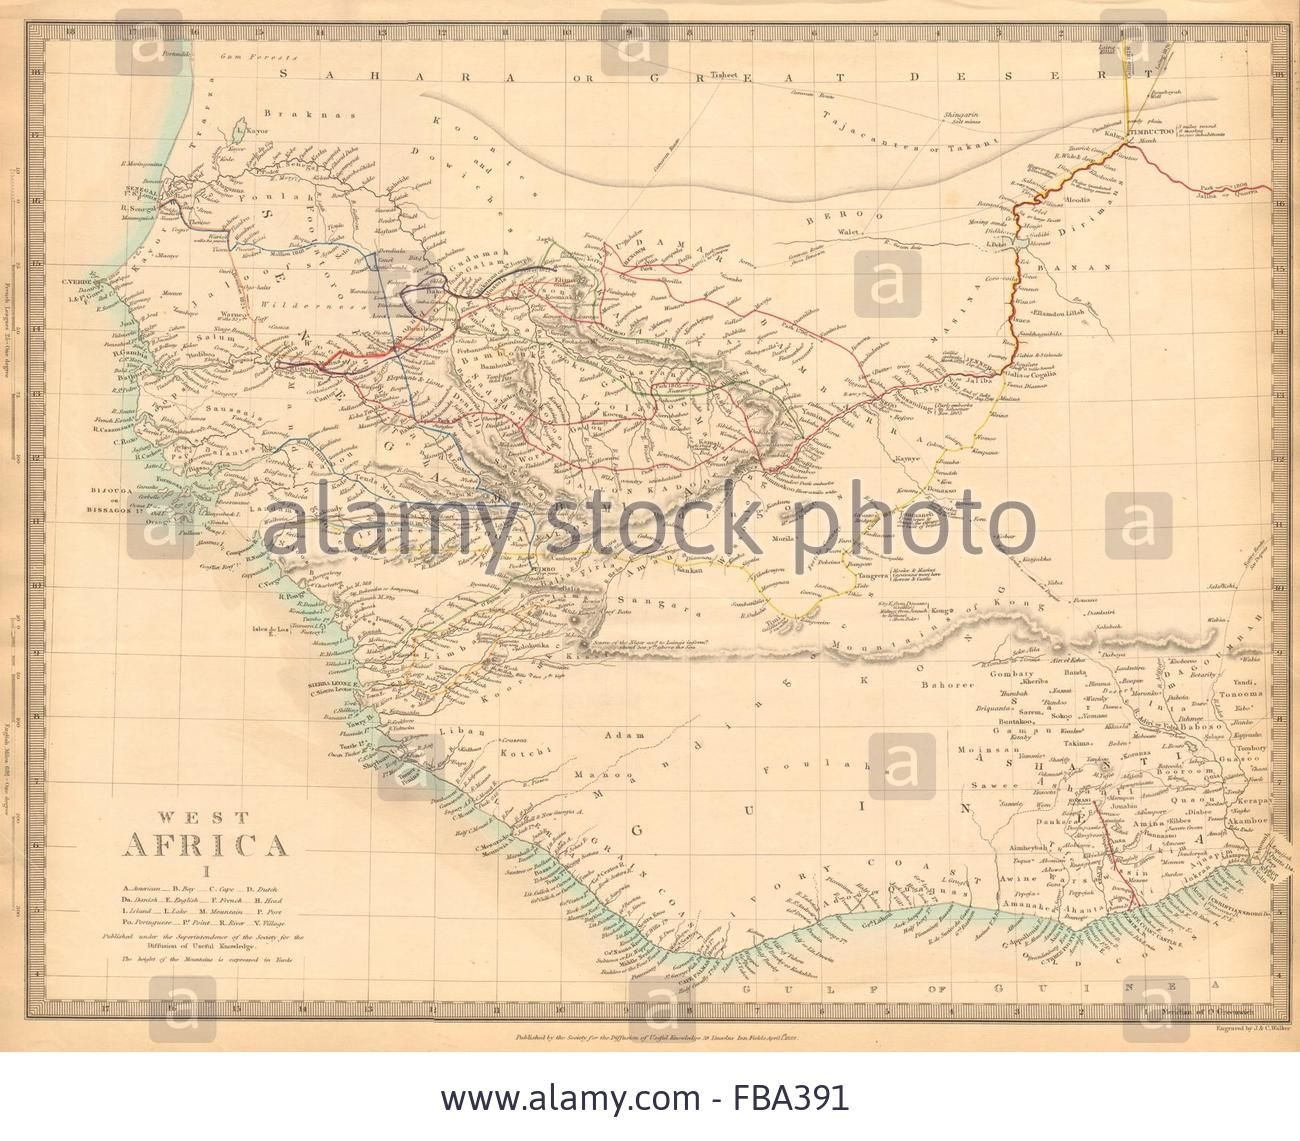 WEST AFRICA showing early explorers routes & Mountains of Kong